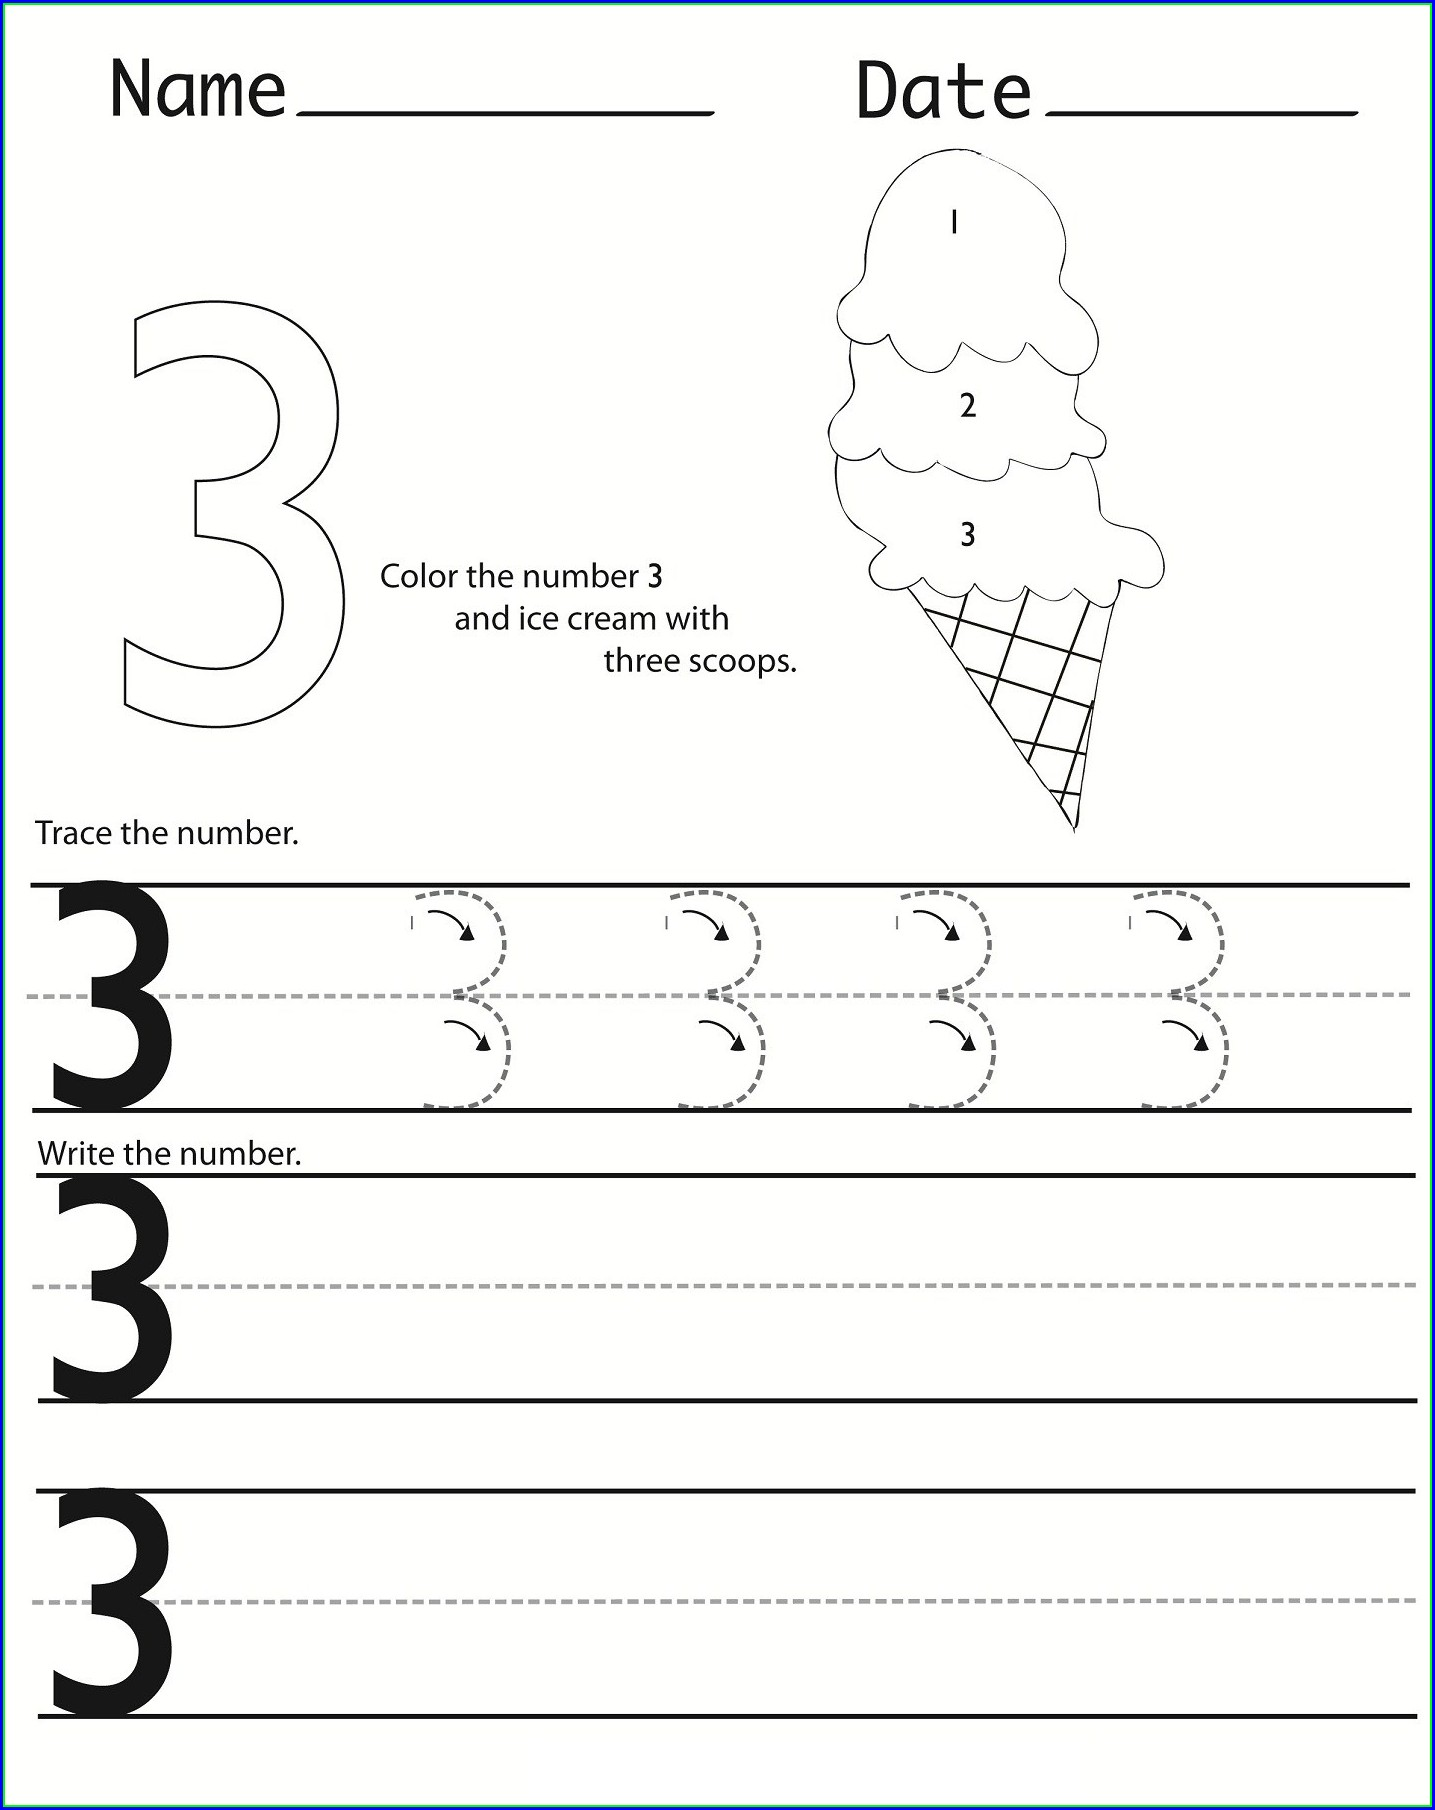 Worksheet For Number 3